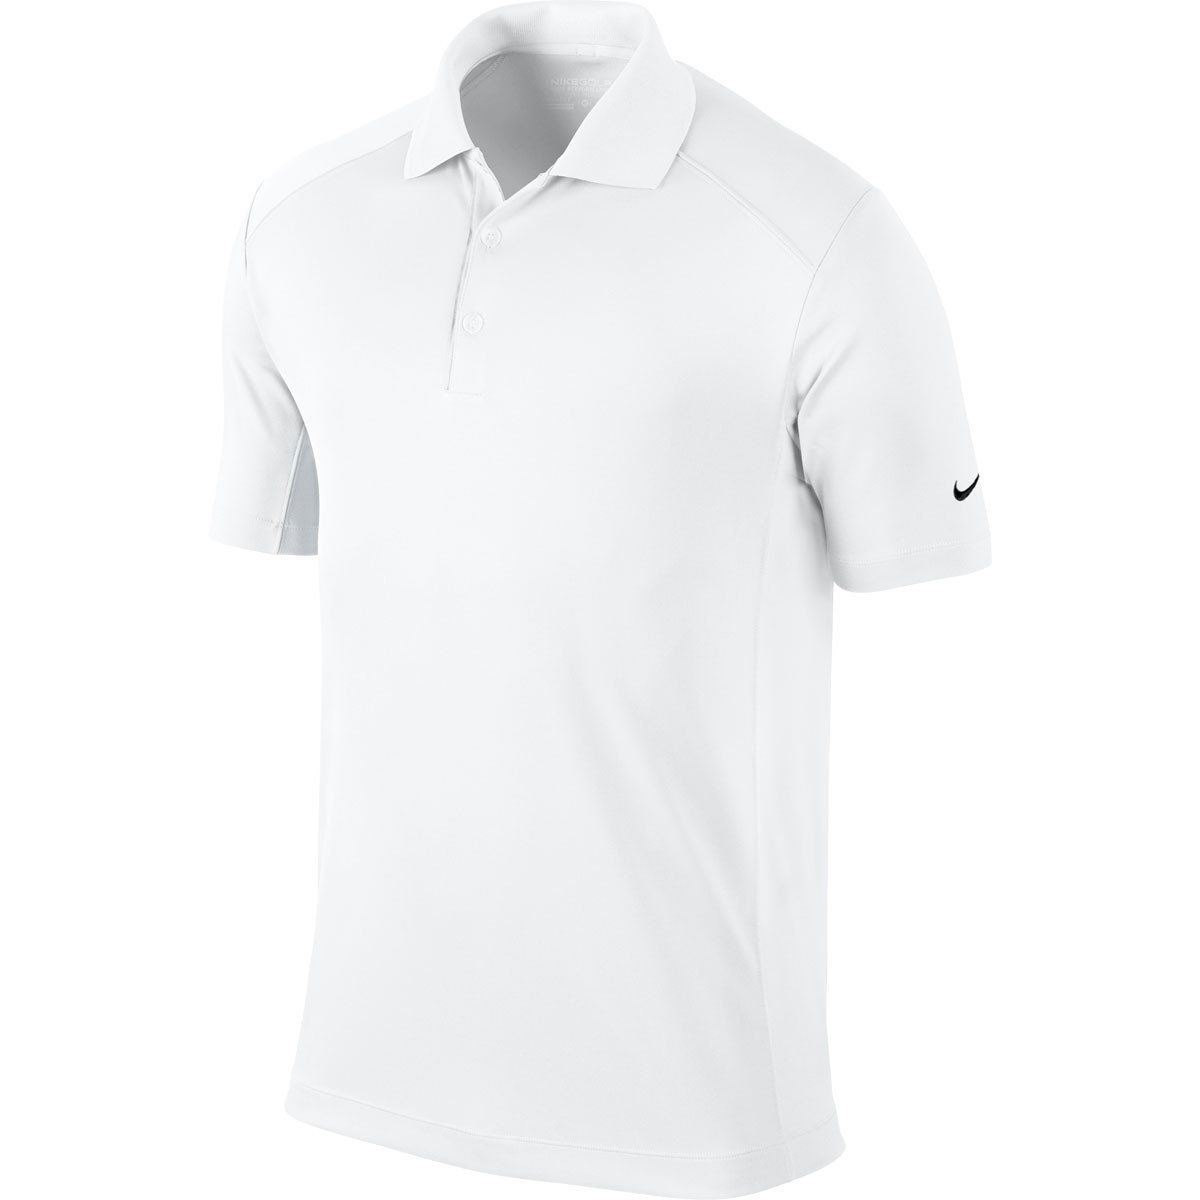 b0d3ccf3 Nike Men's White Victory Polo | Products | Nike golf men, Nike golf ...